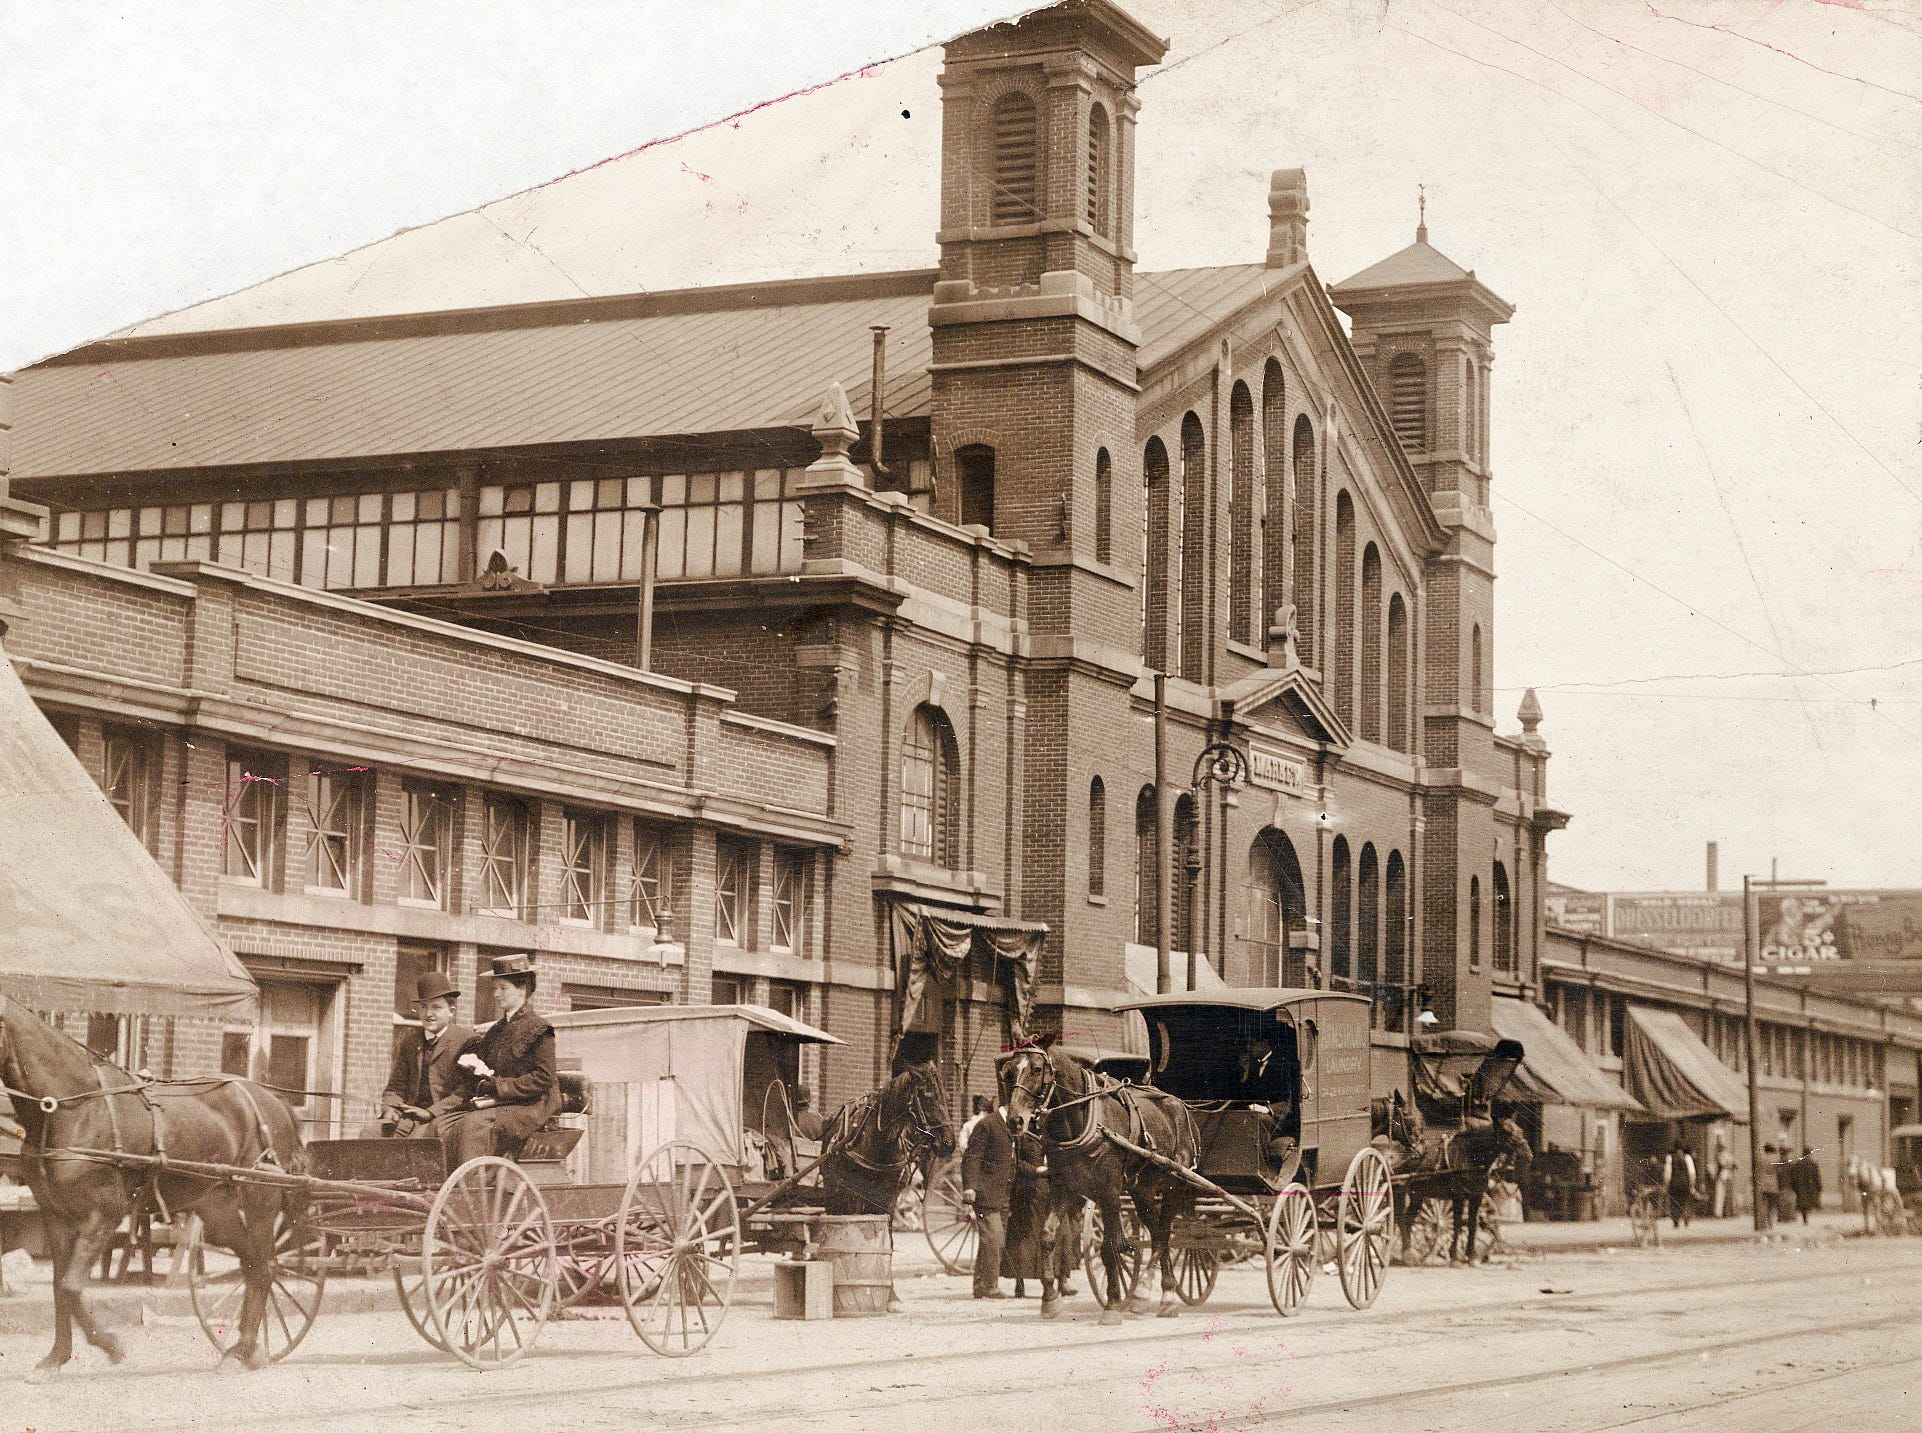 Horses and buggies ambled past the City Market in this view from 1908, looking northeast with Market Street in the foreground.  When sidewalk stands outside the building began to flourish, merchants in the City Market complained the curb merchants were taking away their business. Subsequently, the outside stands were abolished.